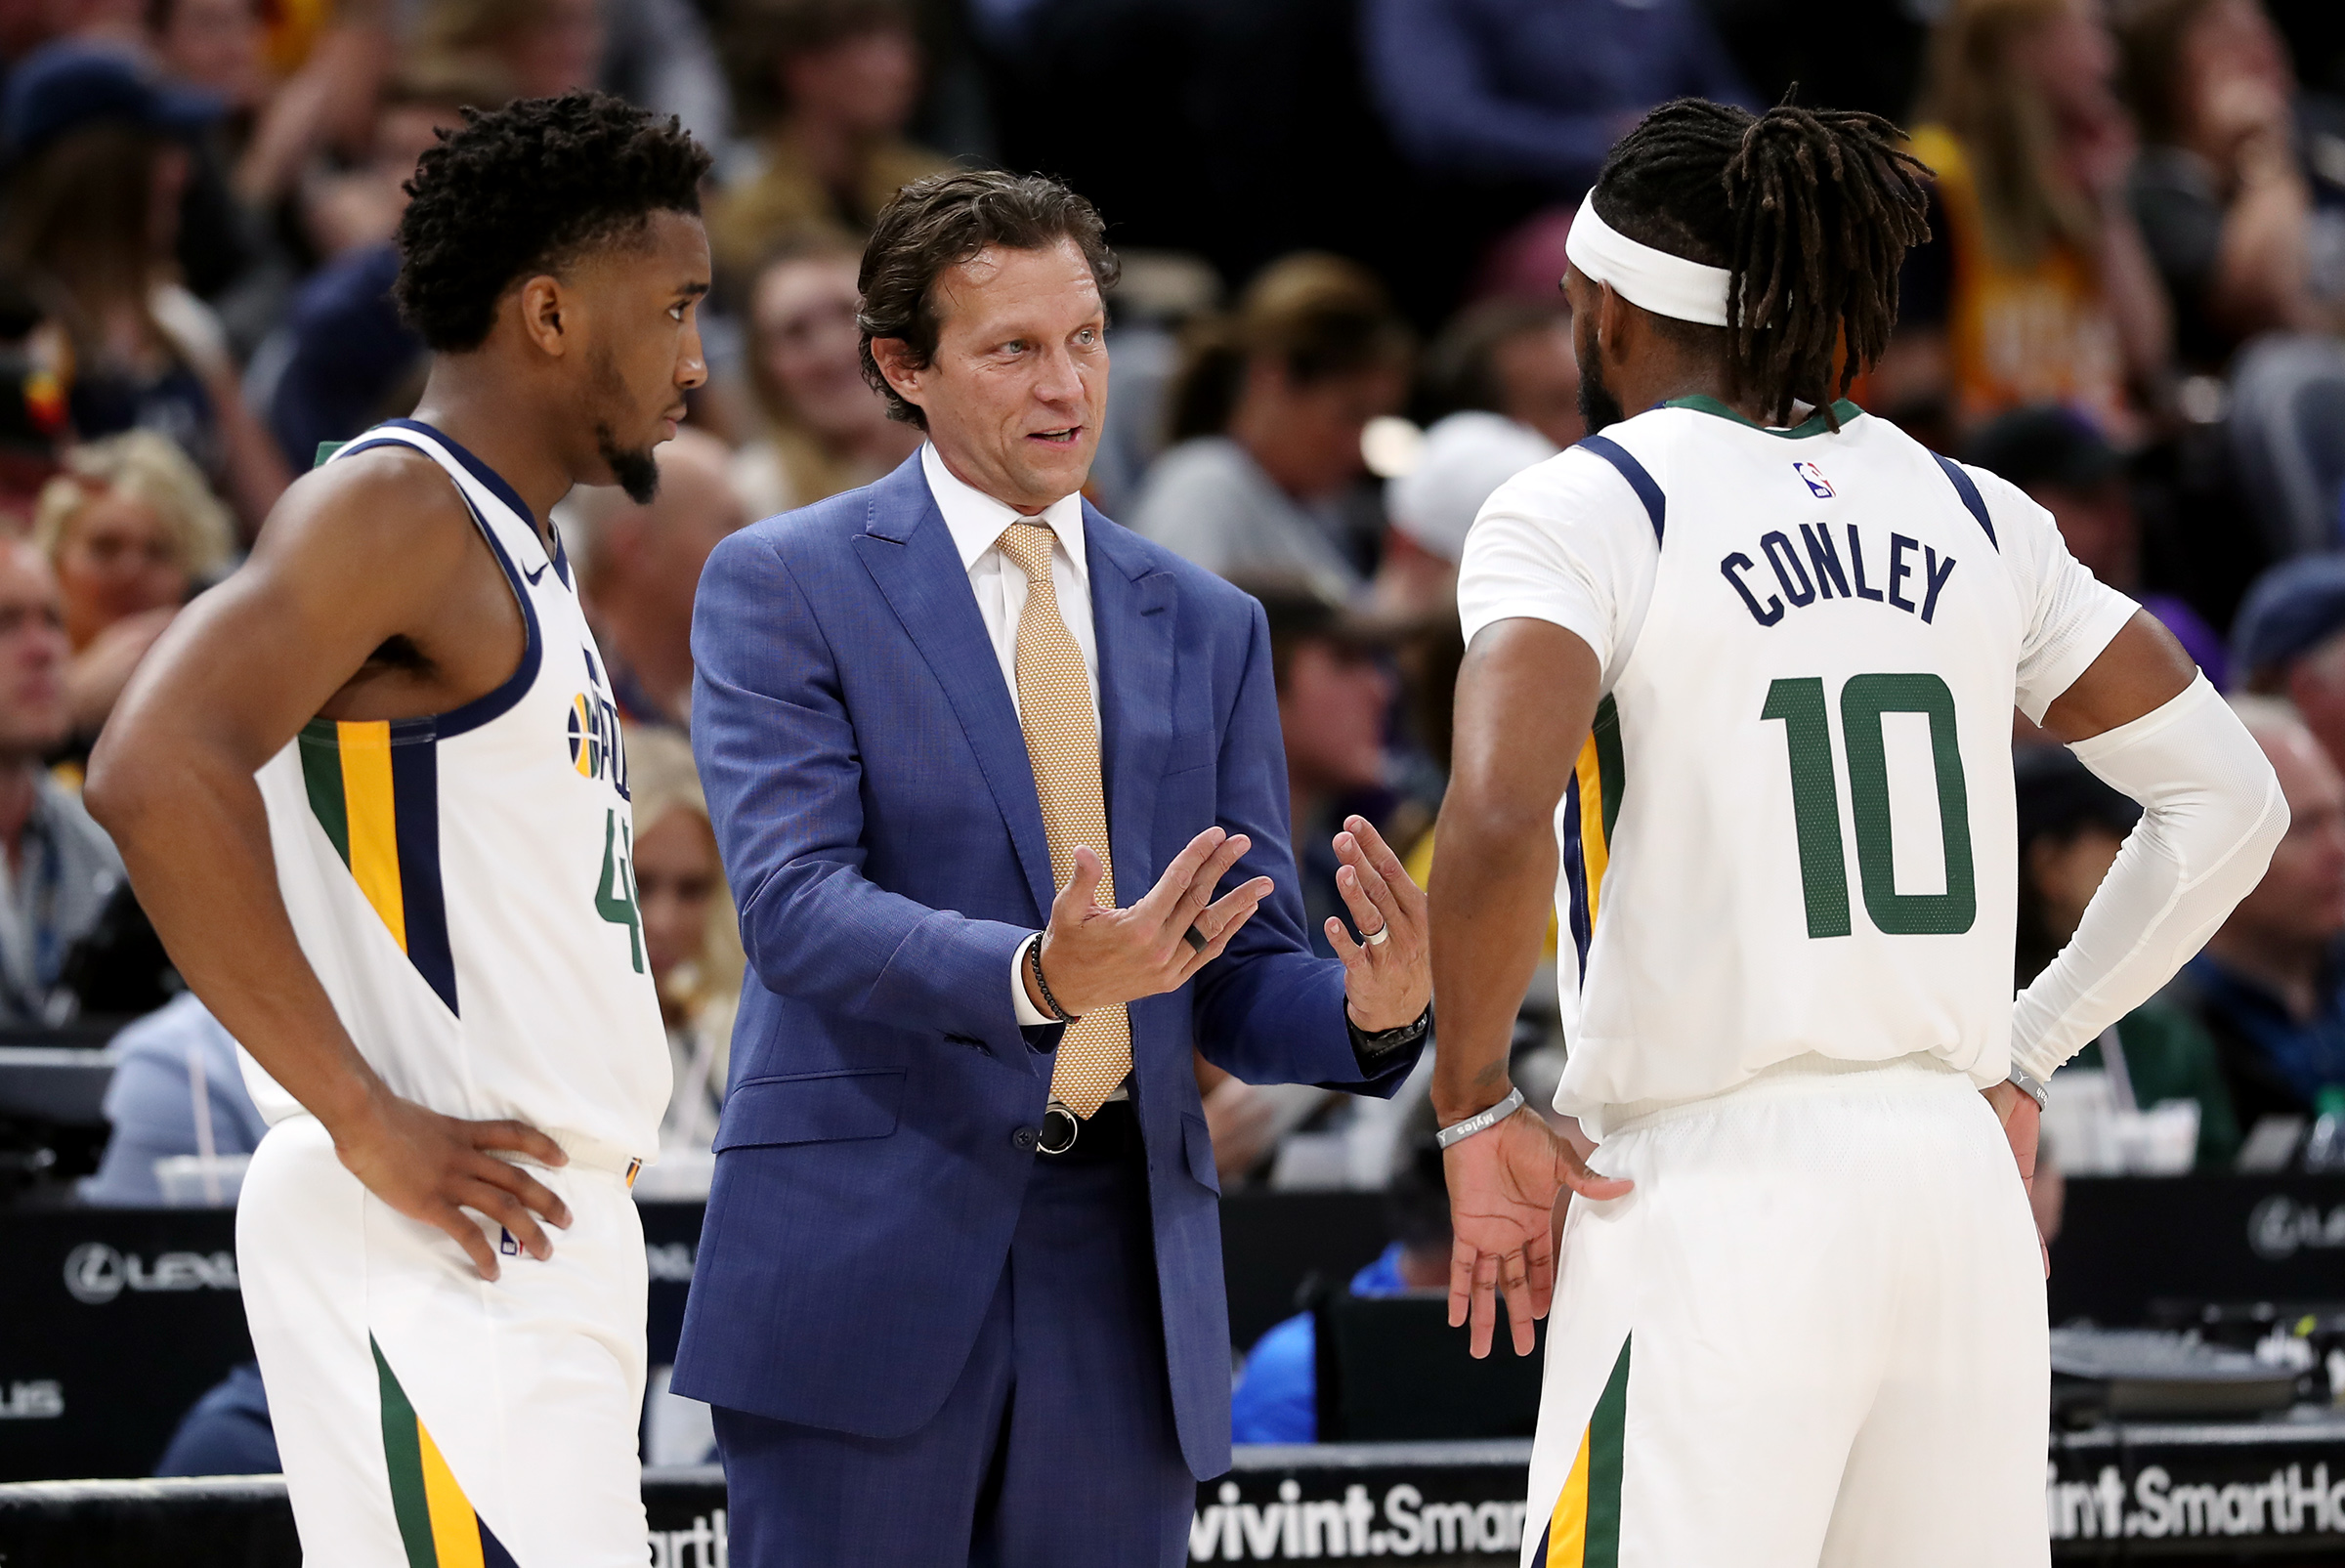 Utah Jazz coach Quin Snyder talks with Utah Jazz guard Donovan Mitchell (45) and Utah Jazz guard Mike Conley (10) as the Utah Jazz and the Portland Trail Blazers play at Vivint Smart Home Arena in Salt Lake City on Wednesday, Oct. 16, 2019.